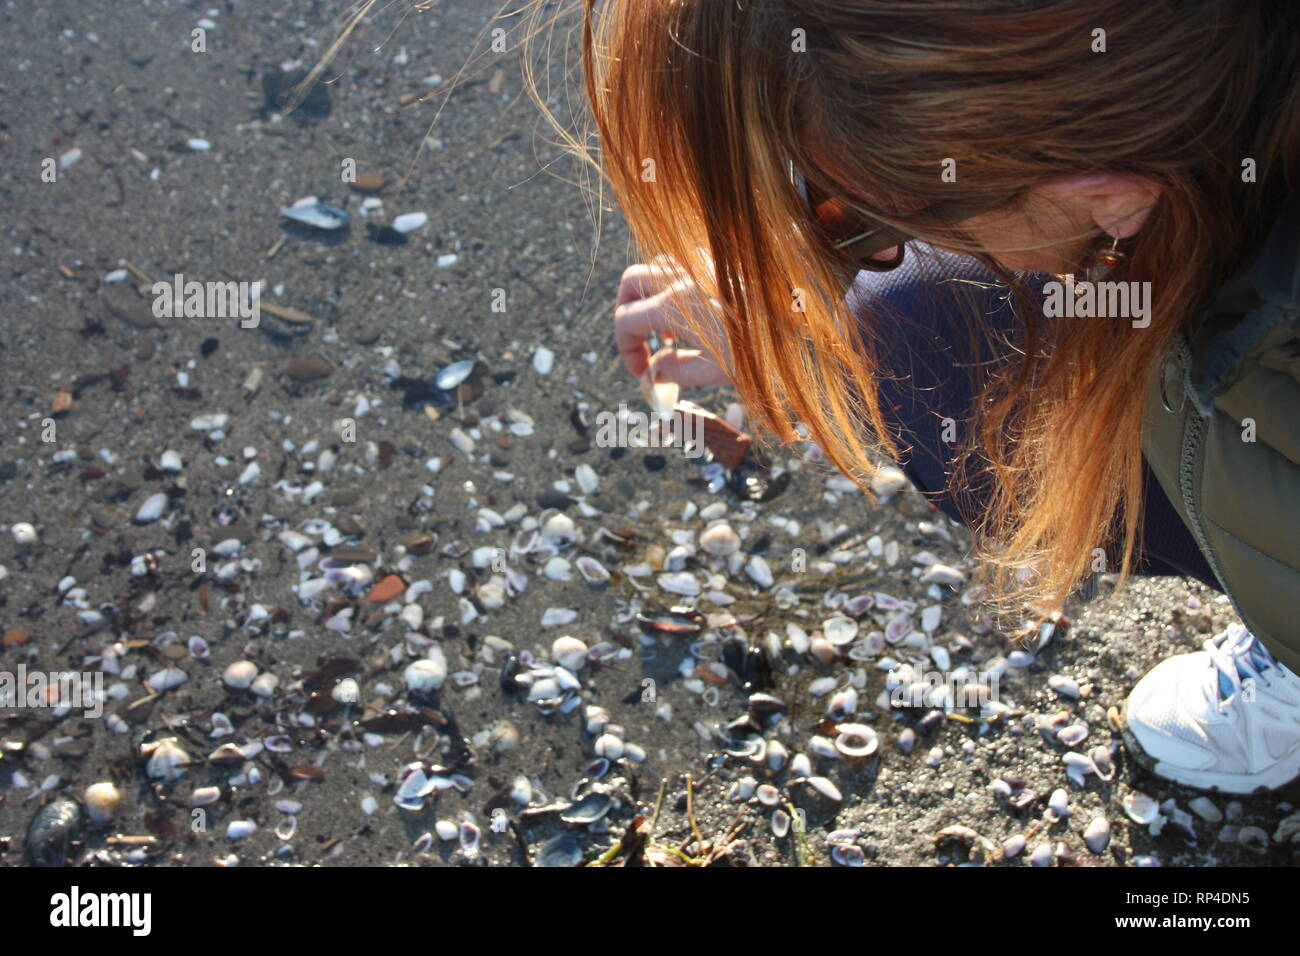 unidentified woman bends over the beach to collect shells in the sand - Stock Image